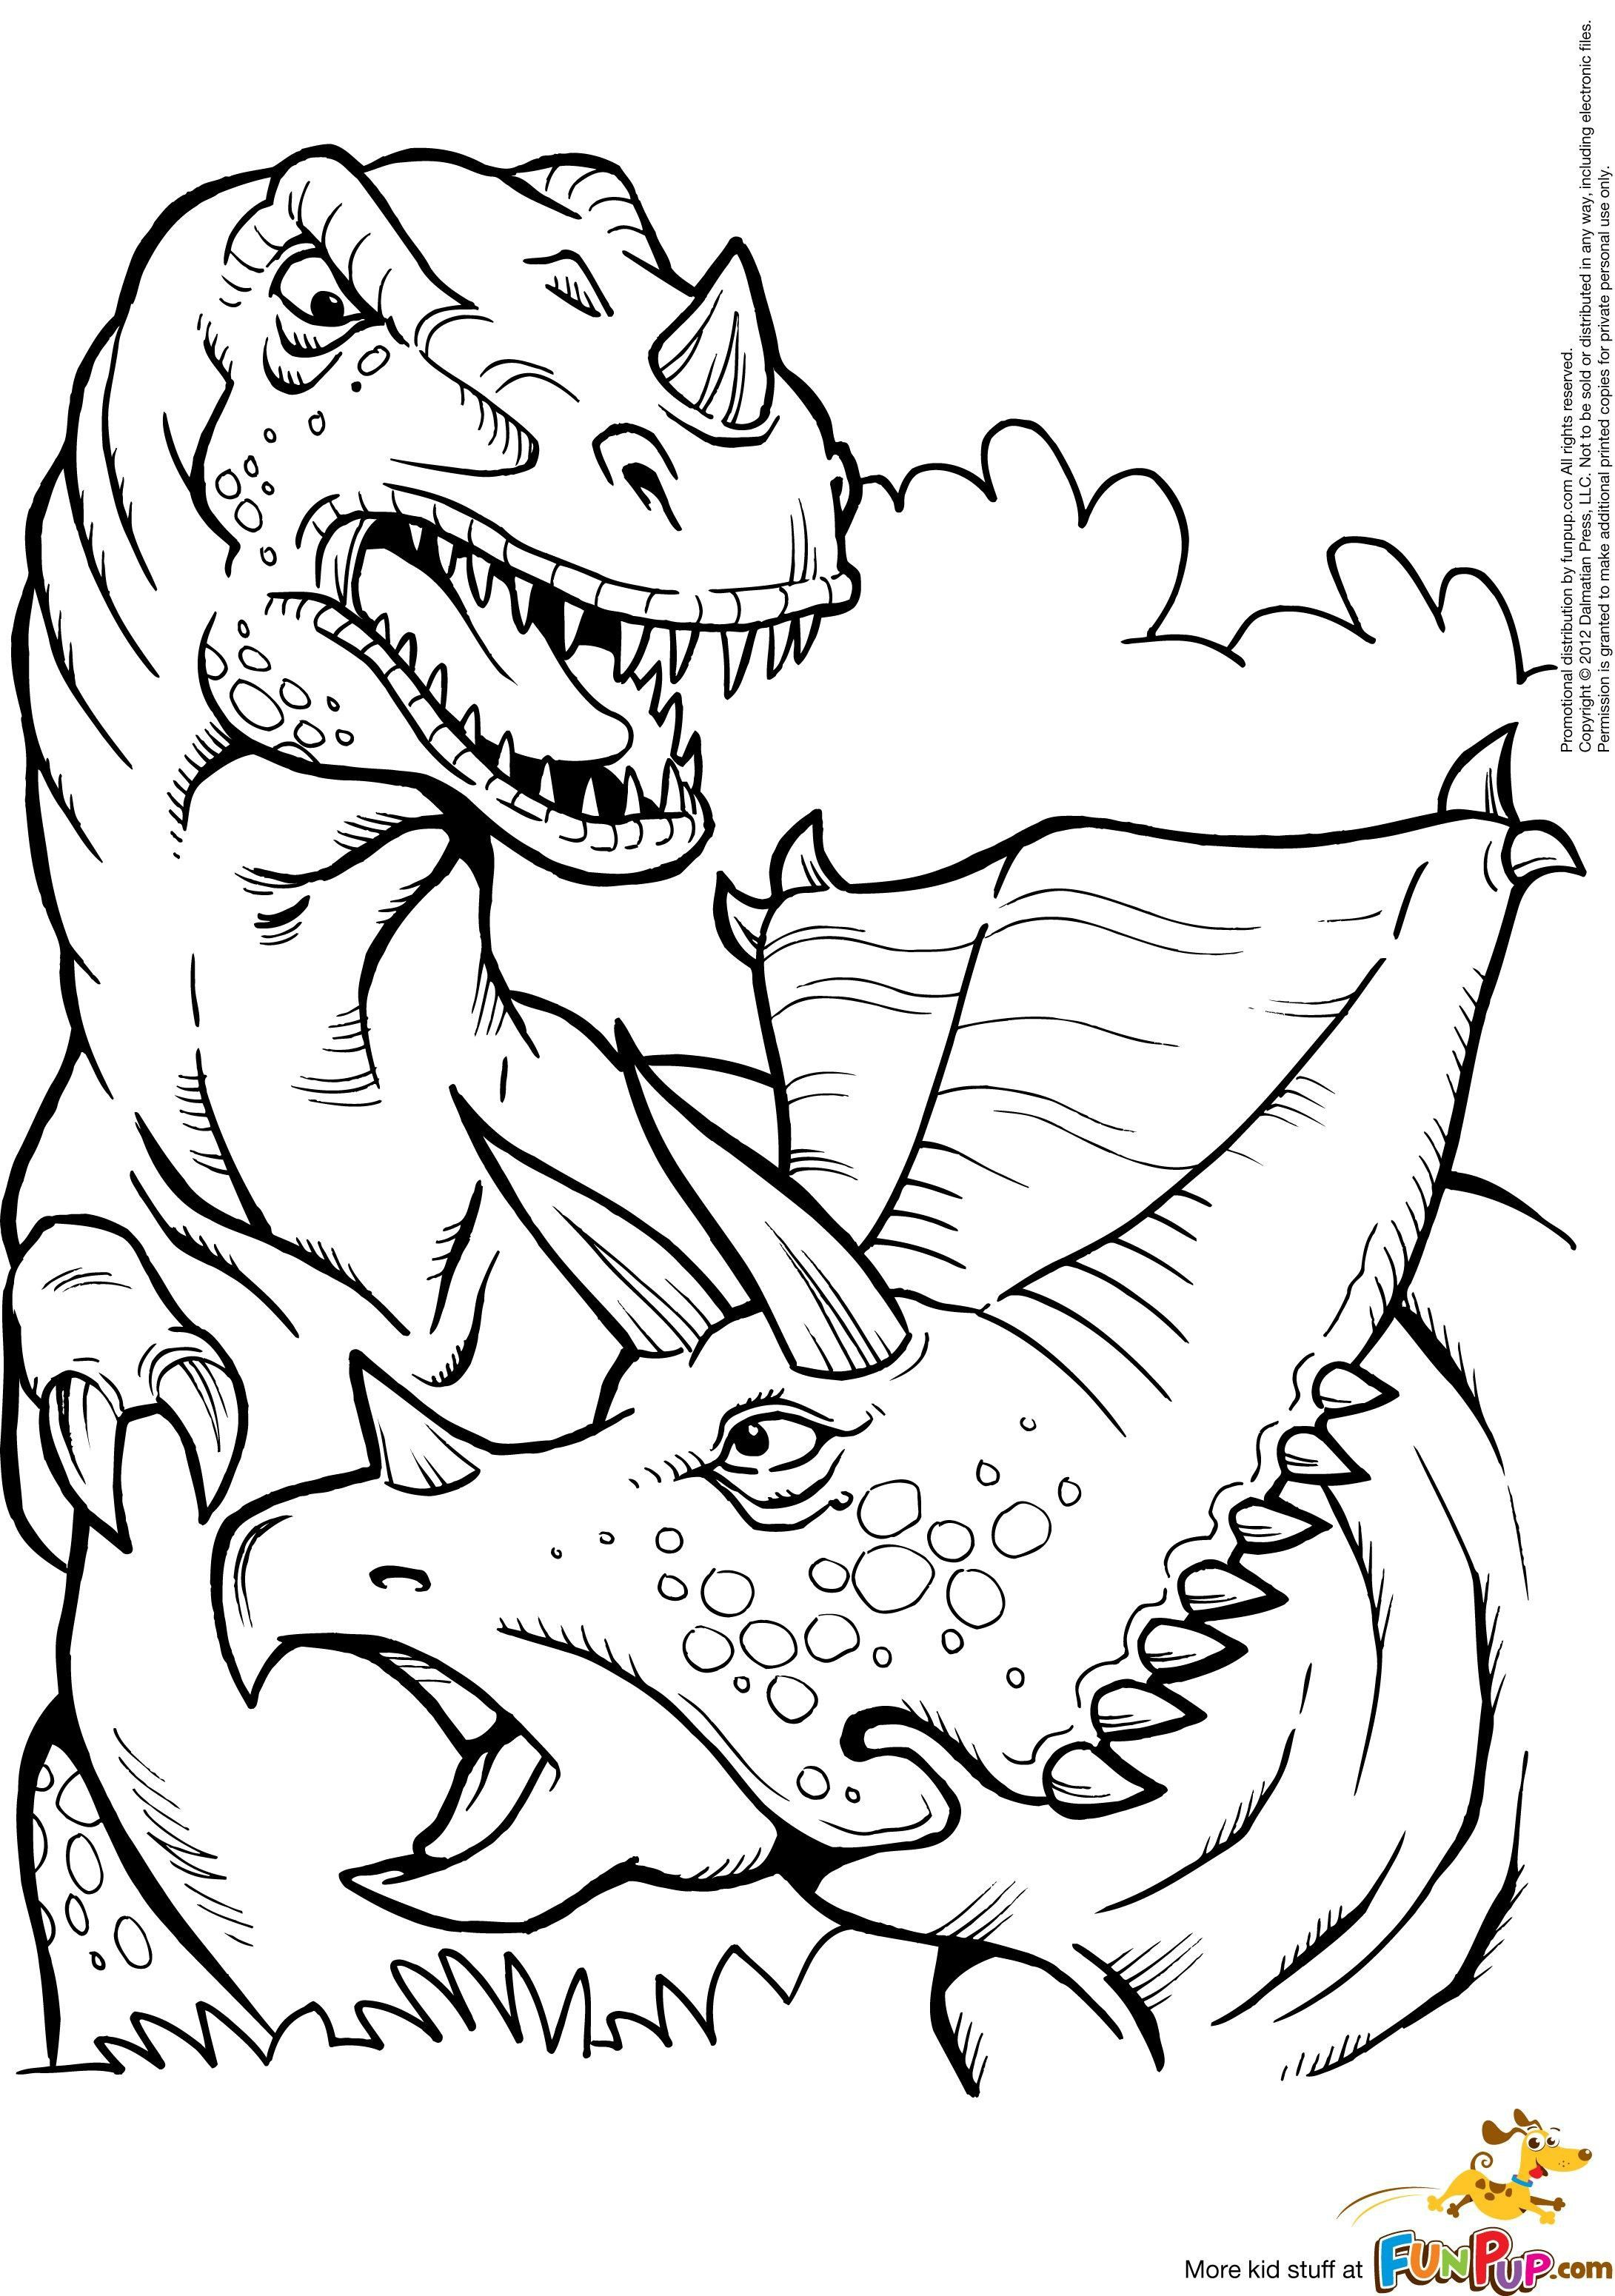 Dinosaurs Coloring Pages Dinosaur Coloring Pages Dinosaur Coloring Sheets Lego Coloring Pages